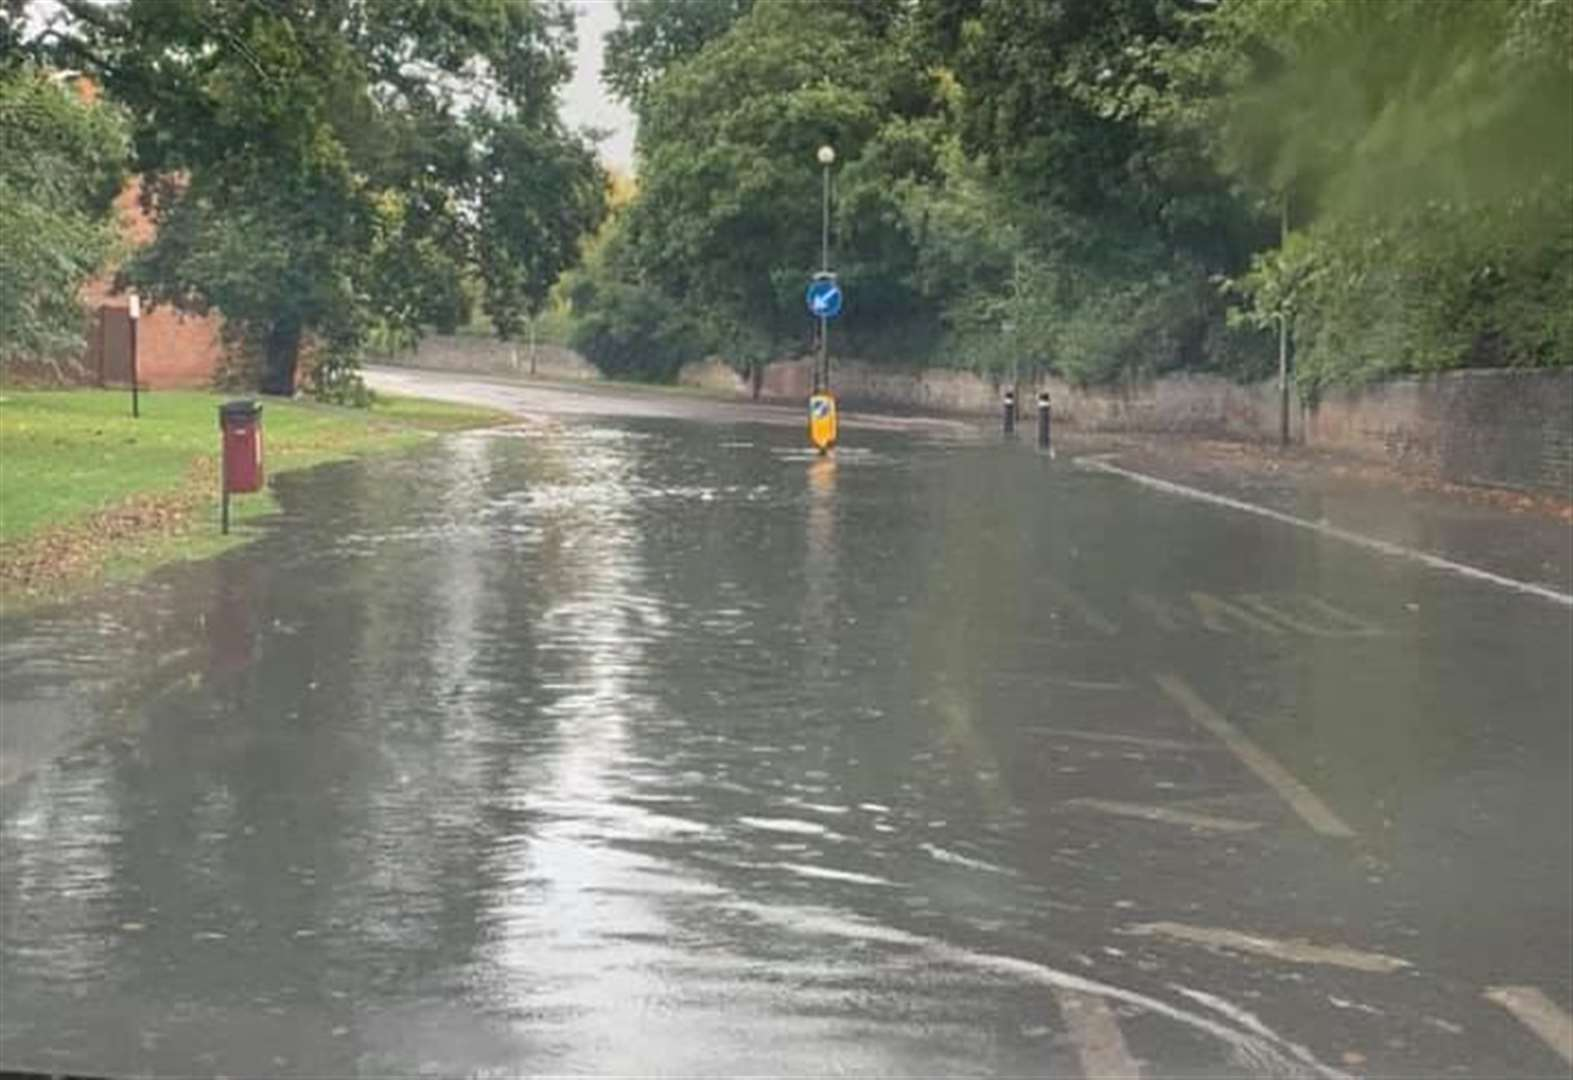 Diversions after flooding on road